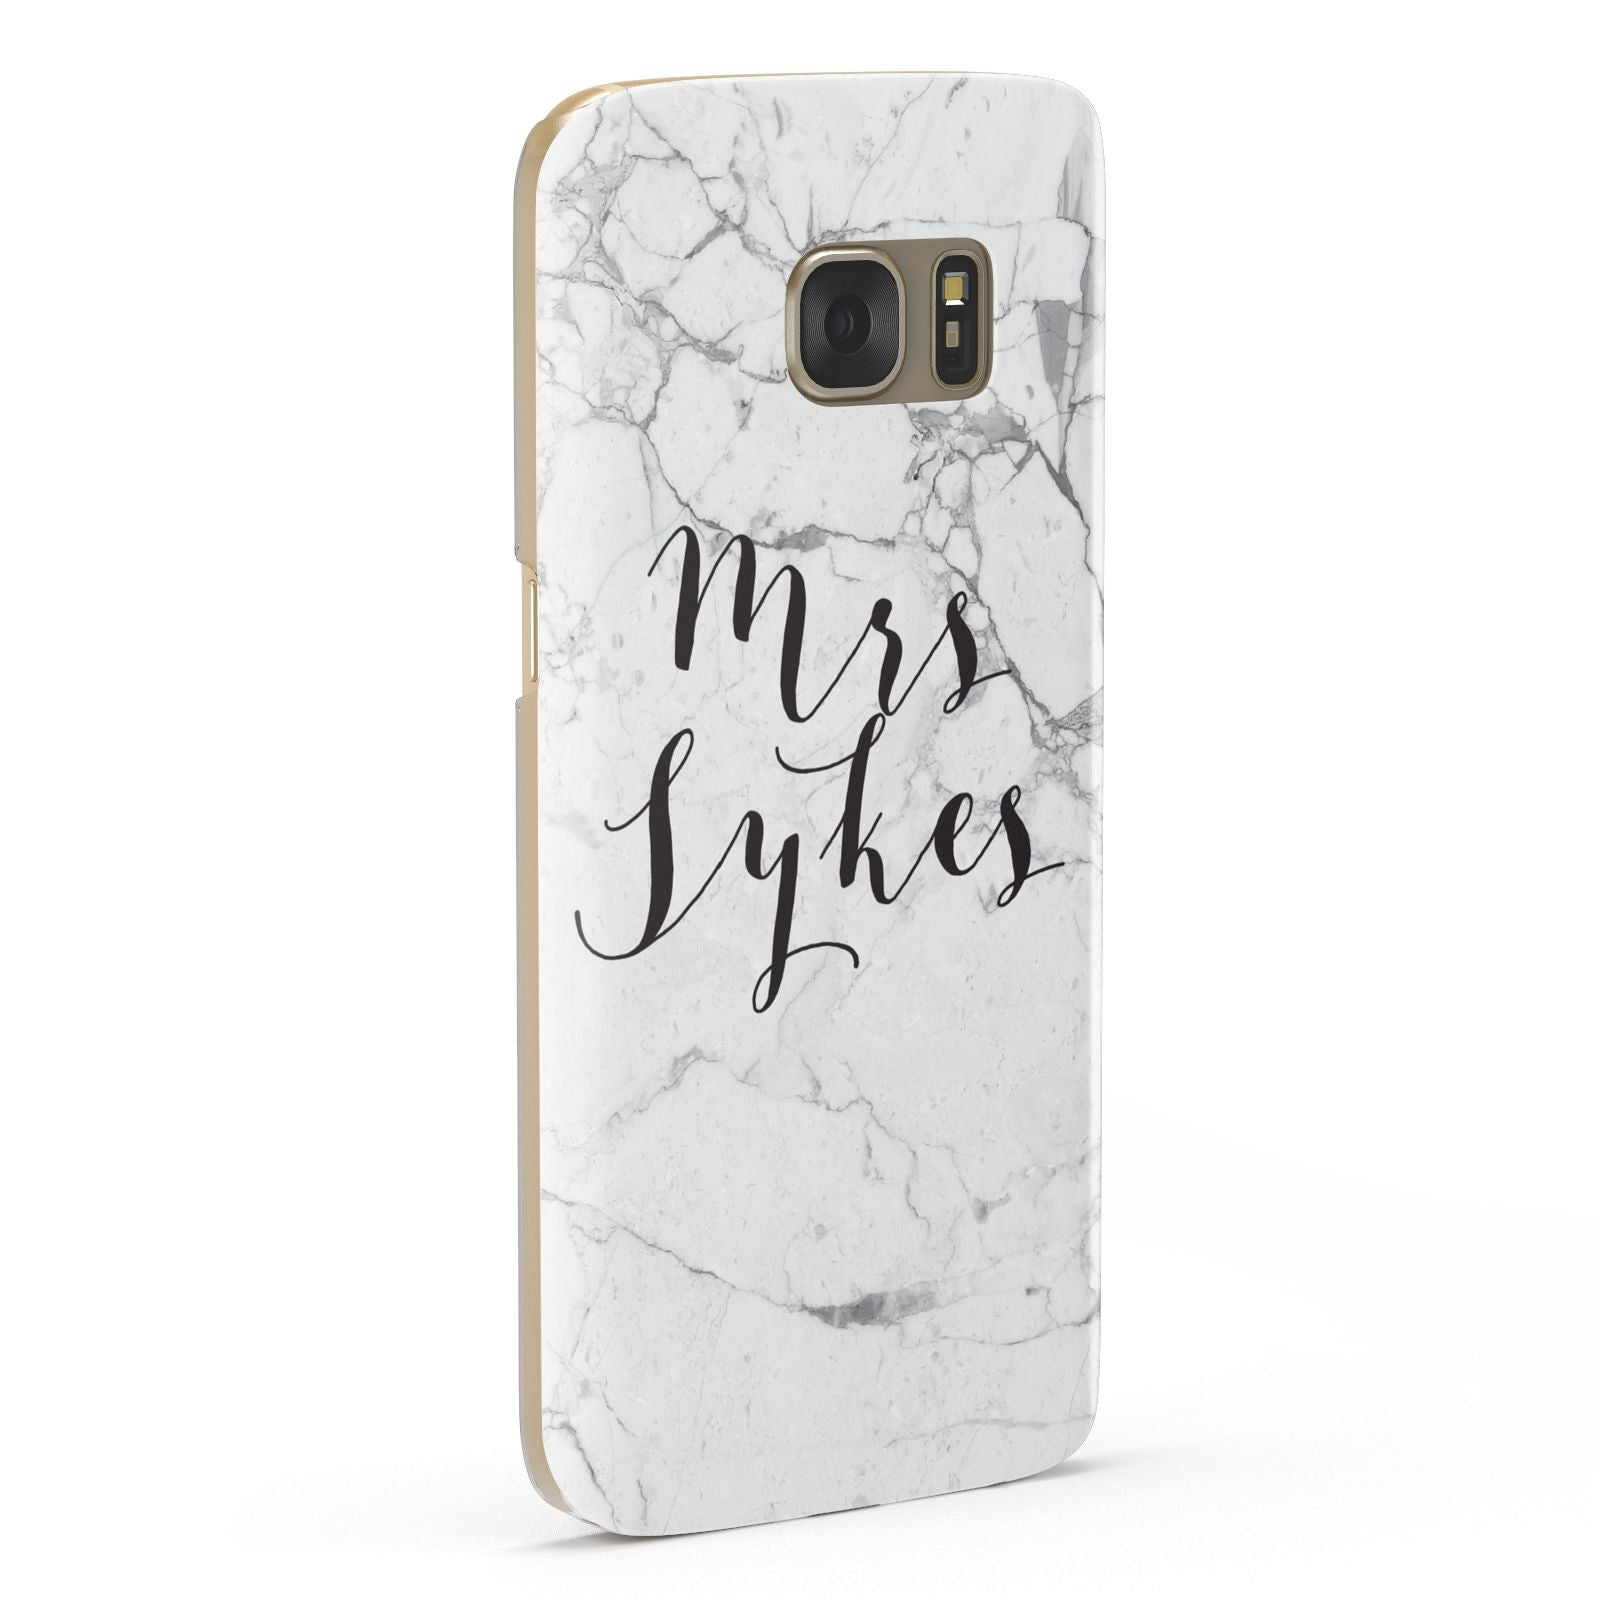 Surname Personalised Marble Samsung Galaxy Case Fourty Five Degrees